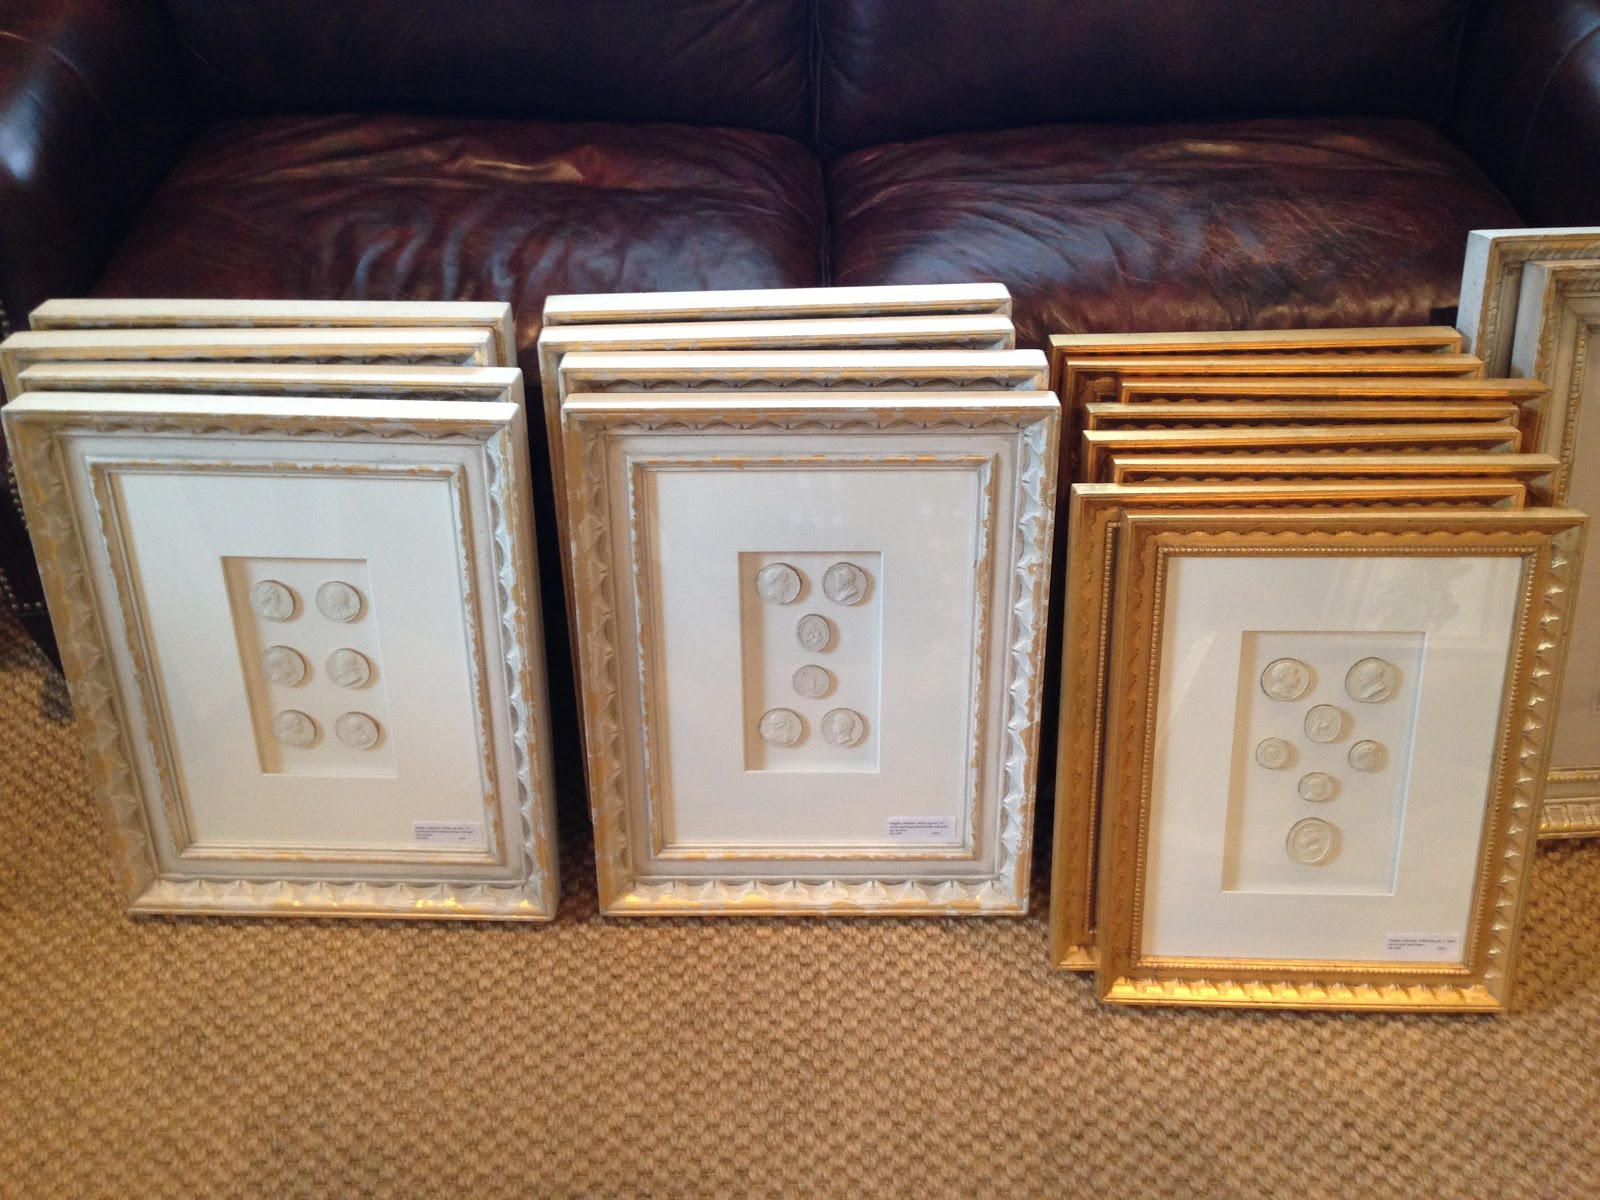 these are examples of the framed intaglios available at the market below is a close up of the intricacy of the frames